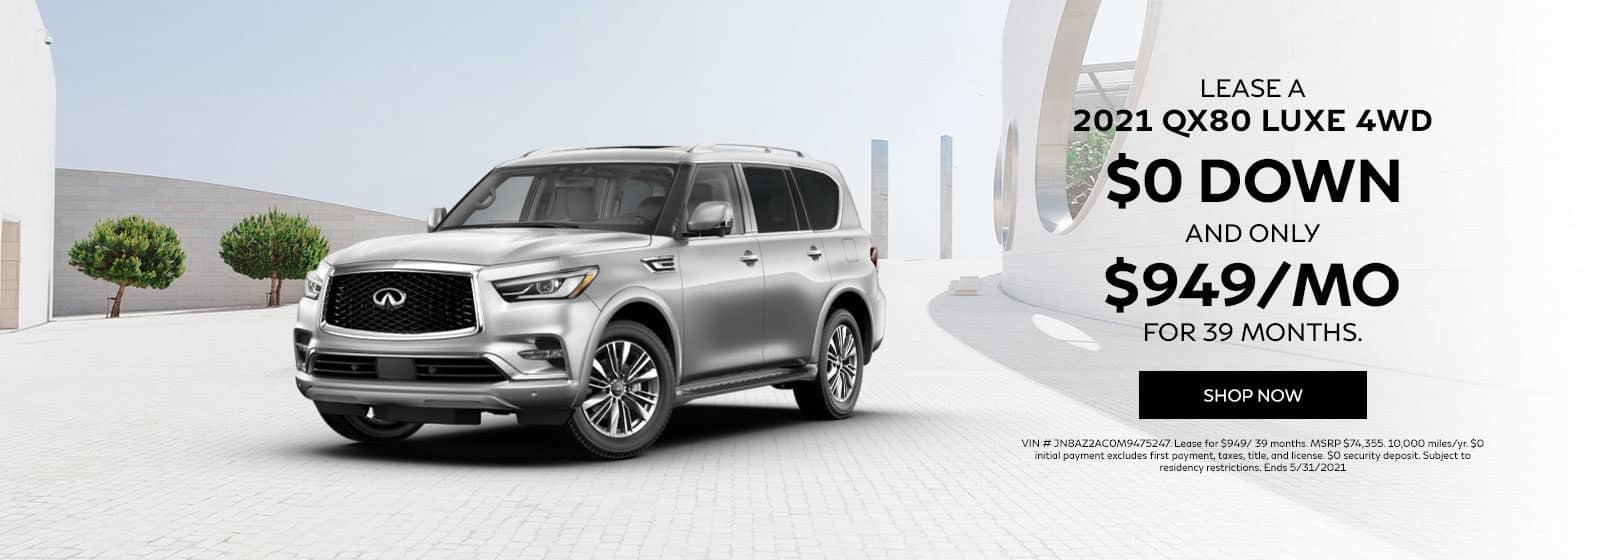 Lease a 2021 QX80 LUXE 4WD